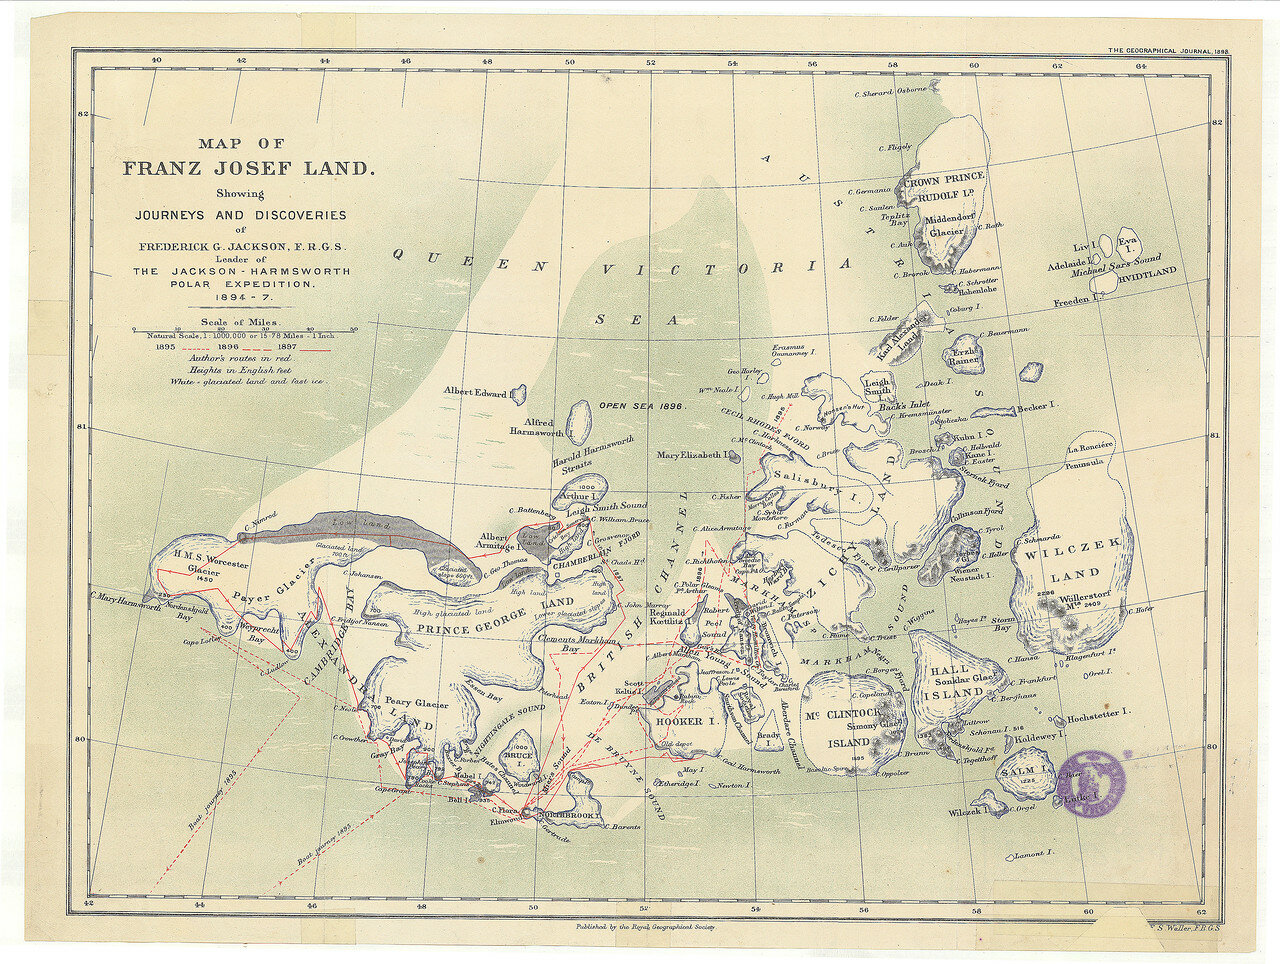 Map_of_Franz_Josef_Land_showing_journeys_and_discoveries_of_Frederick_G._Jackson,_F.R.G.S._-_UvA-BC_OTM_HB-KZL_61_18_38.jpg